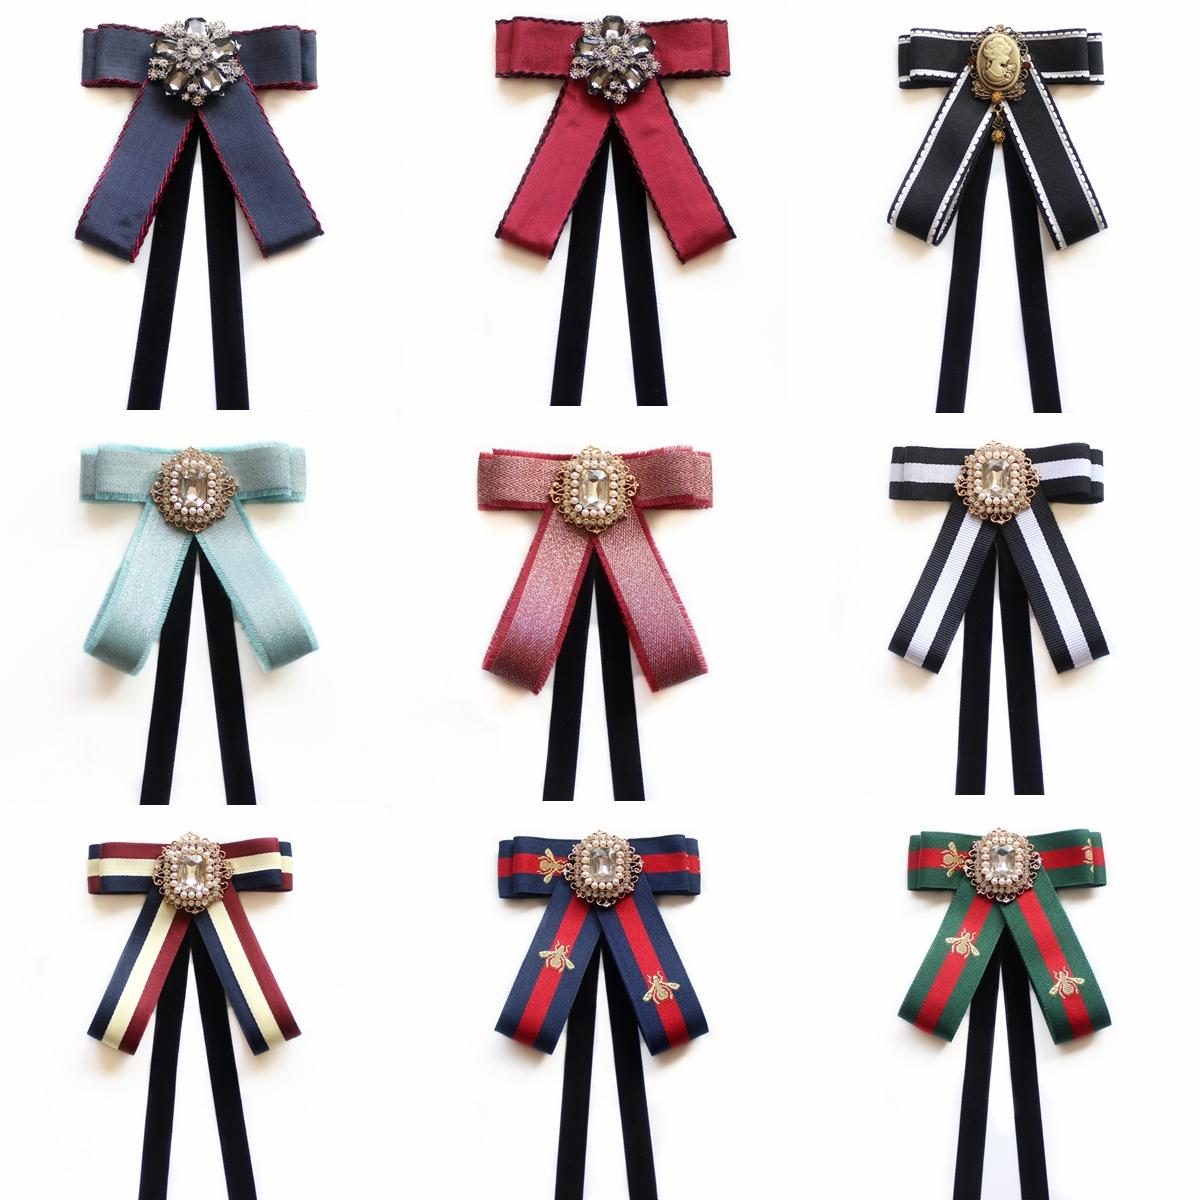 Korean Vintage Big Fabric Bow Tie Brooches For Girl Women Fashion Stripe Cloth Shirt Corsage Neck Tie Wedding Party Accessories